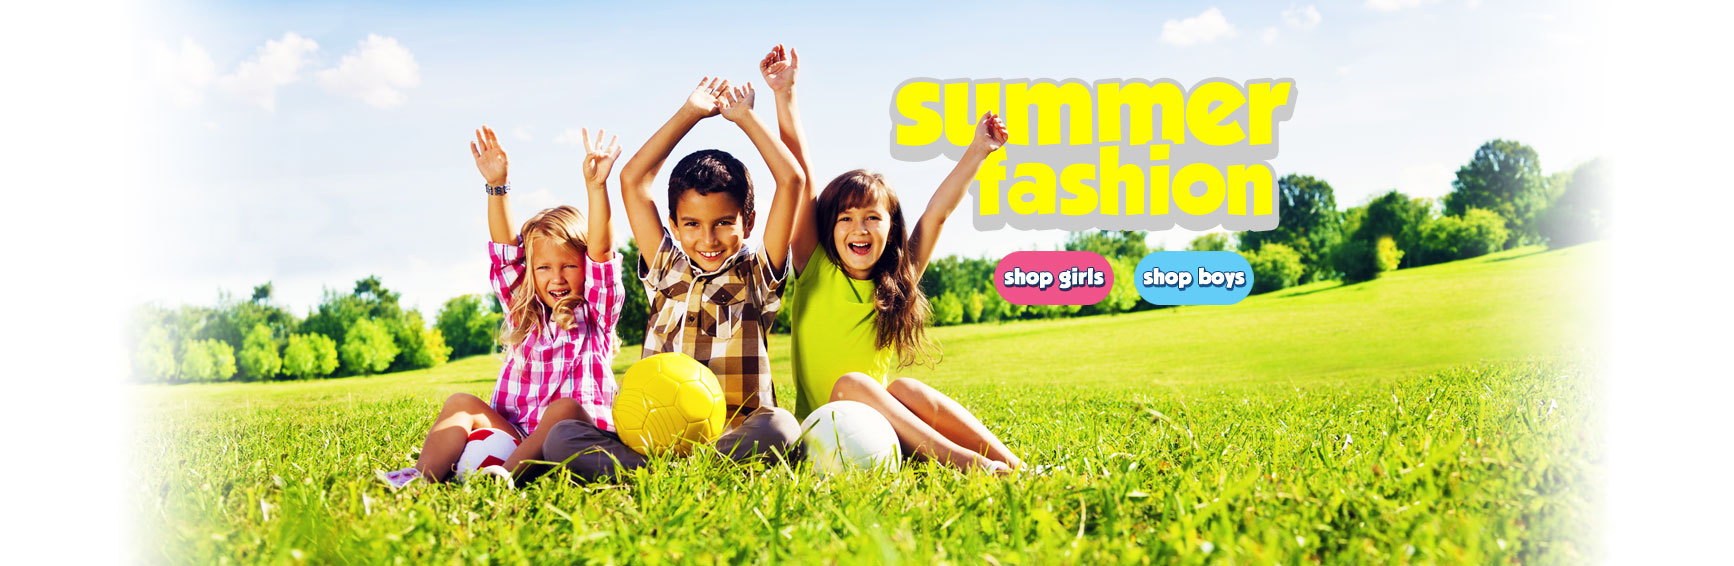 Shop Boys and Girls Summer Fashions